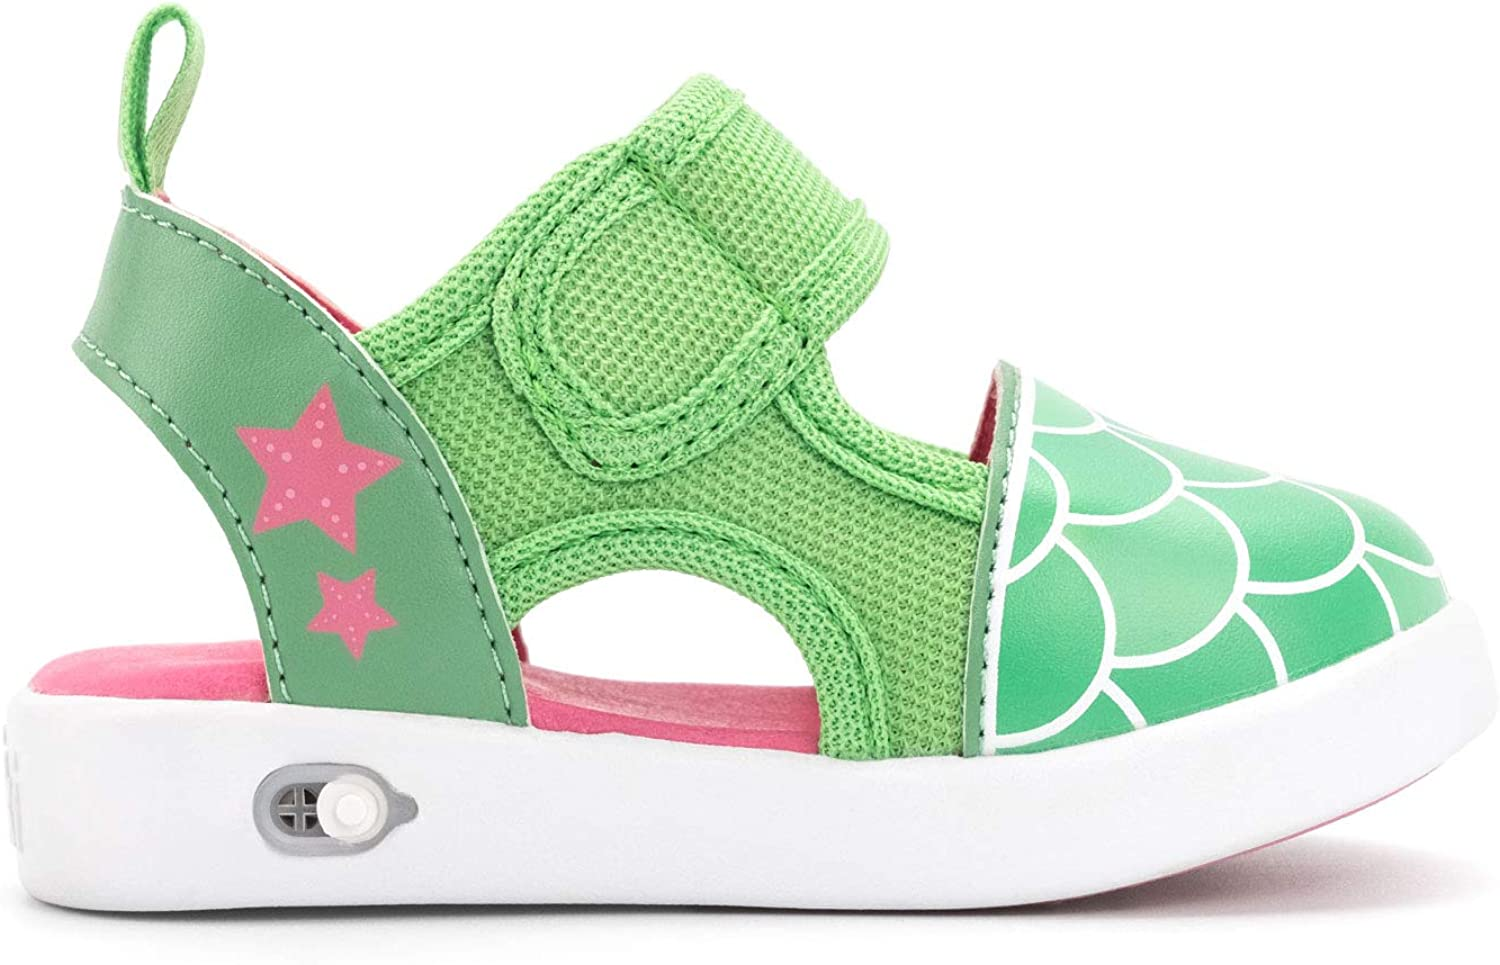 ikiki Squeaky Sandals for Kids